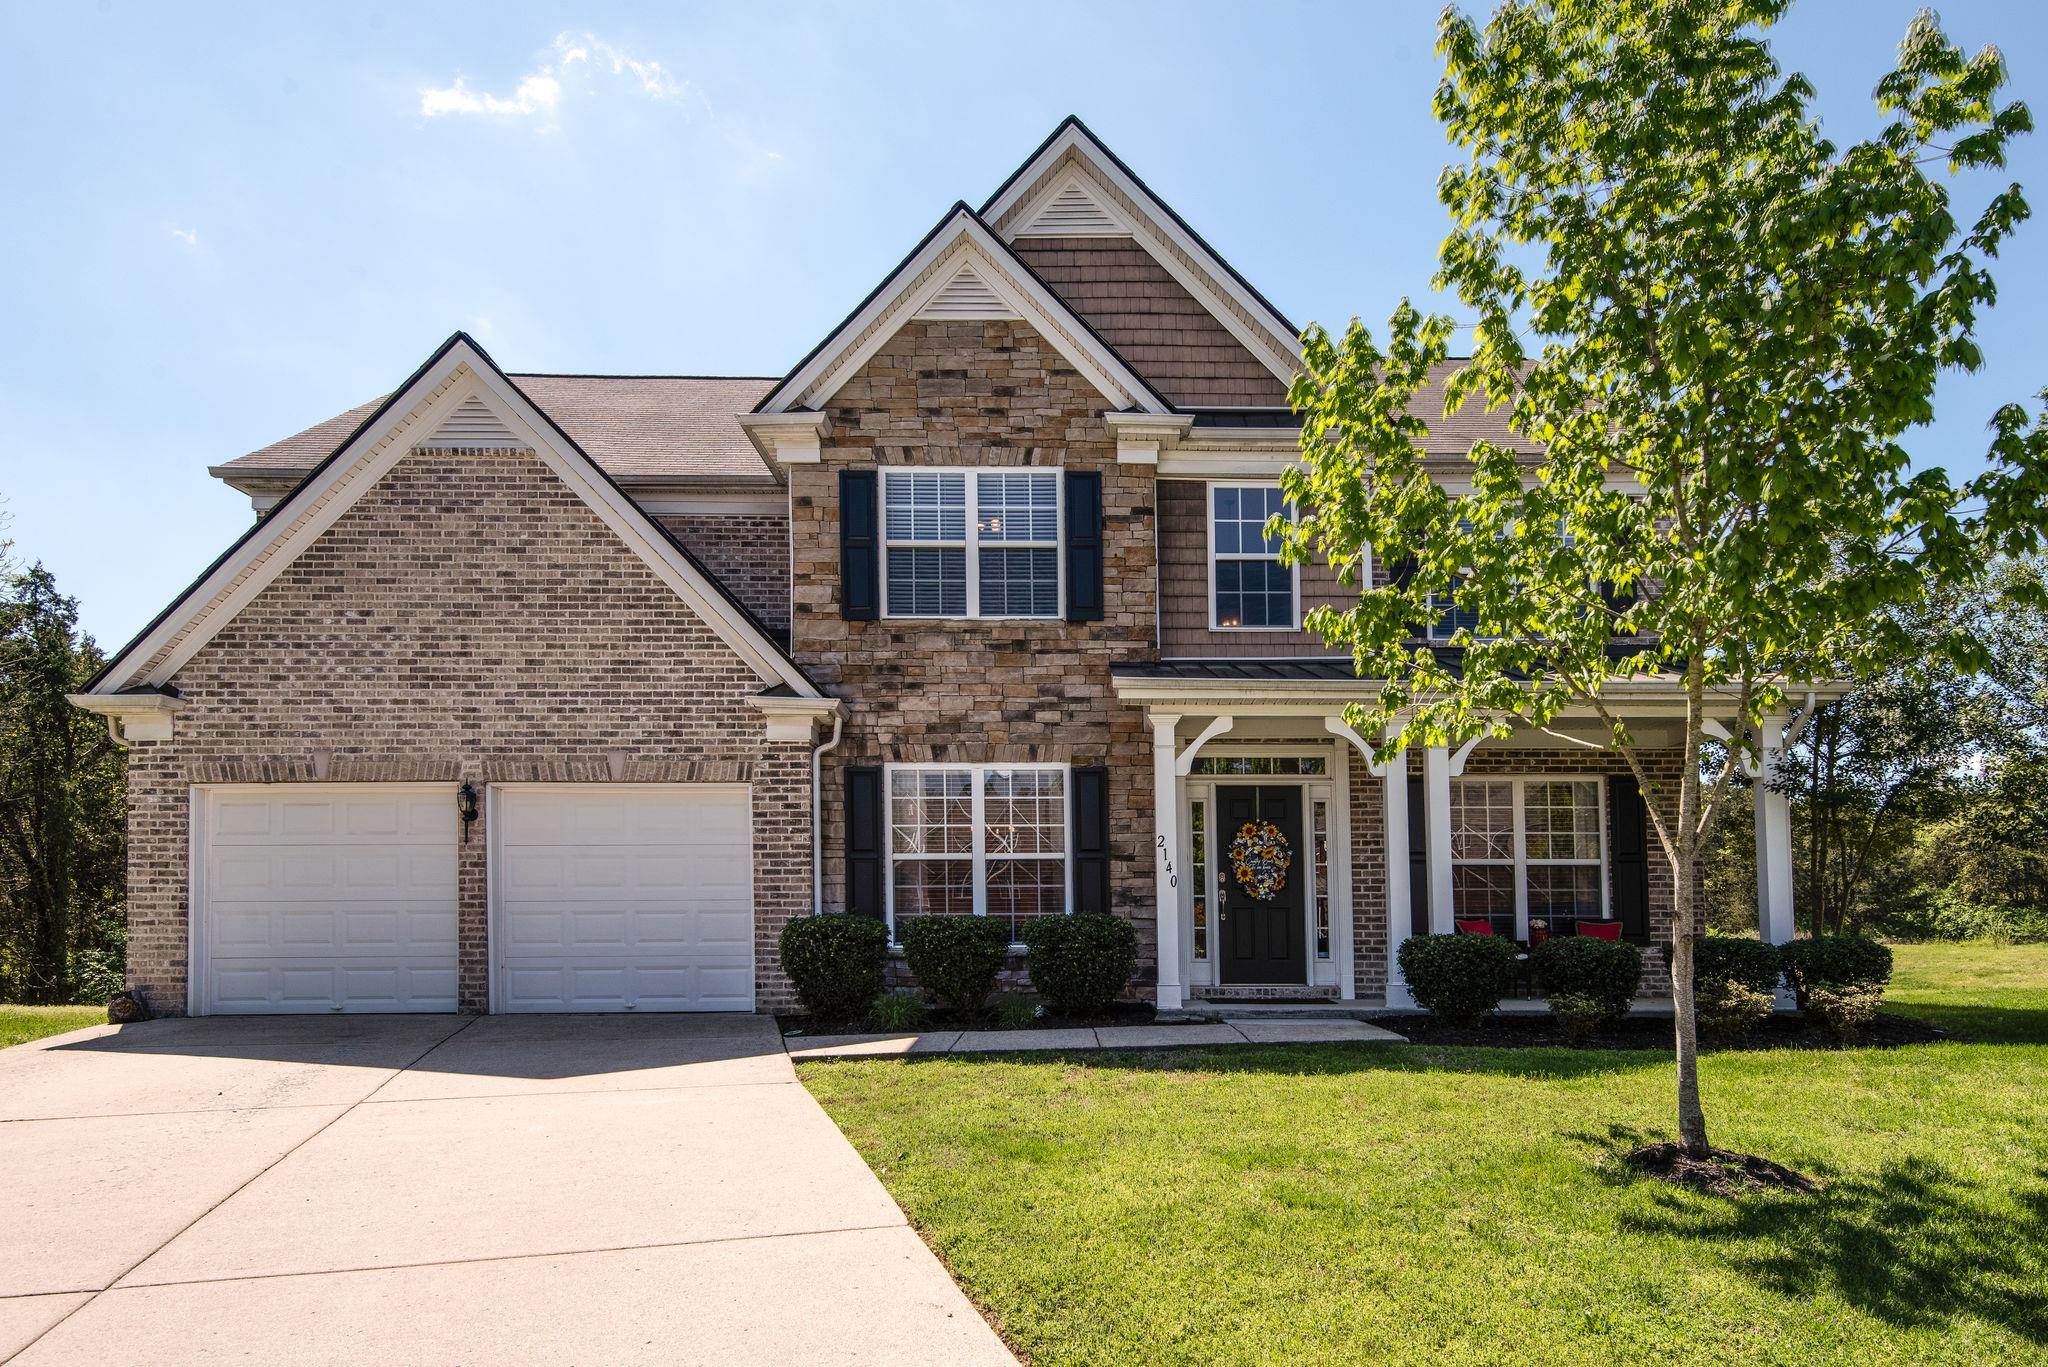 2140 Sister Ct, Nolensville in Williamson County County, TN 37135 Home for Sale